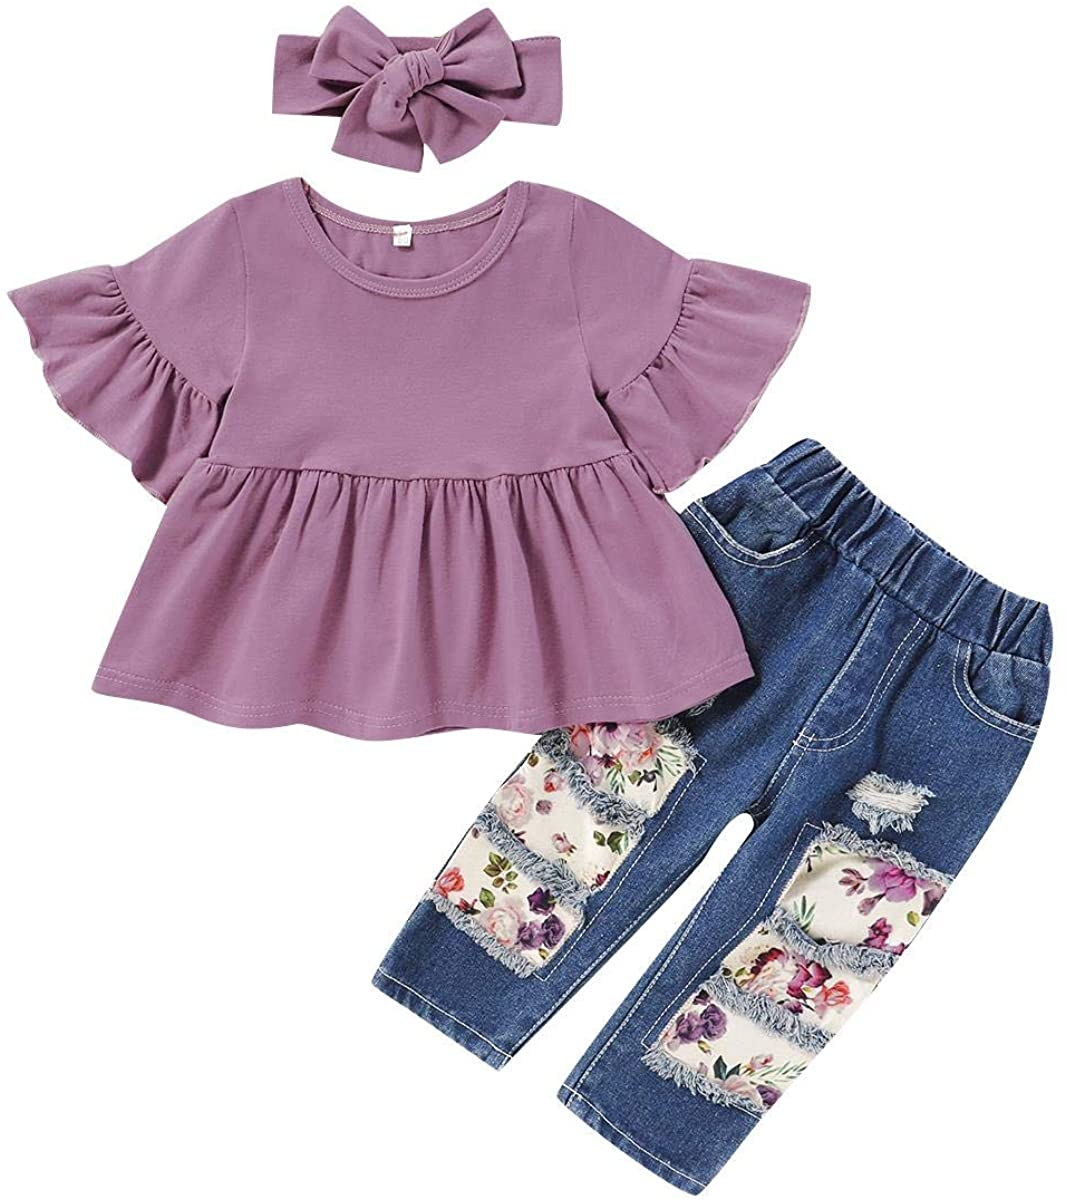 Toddler Baby Girls Floral Outfits Sunflower Flower Ruffle Top + Ripped Jeans Pants + Headband Summer Boutique Clothes